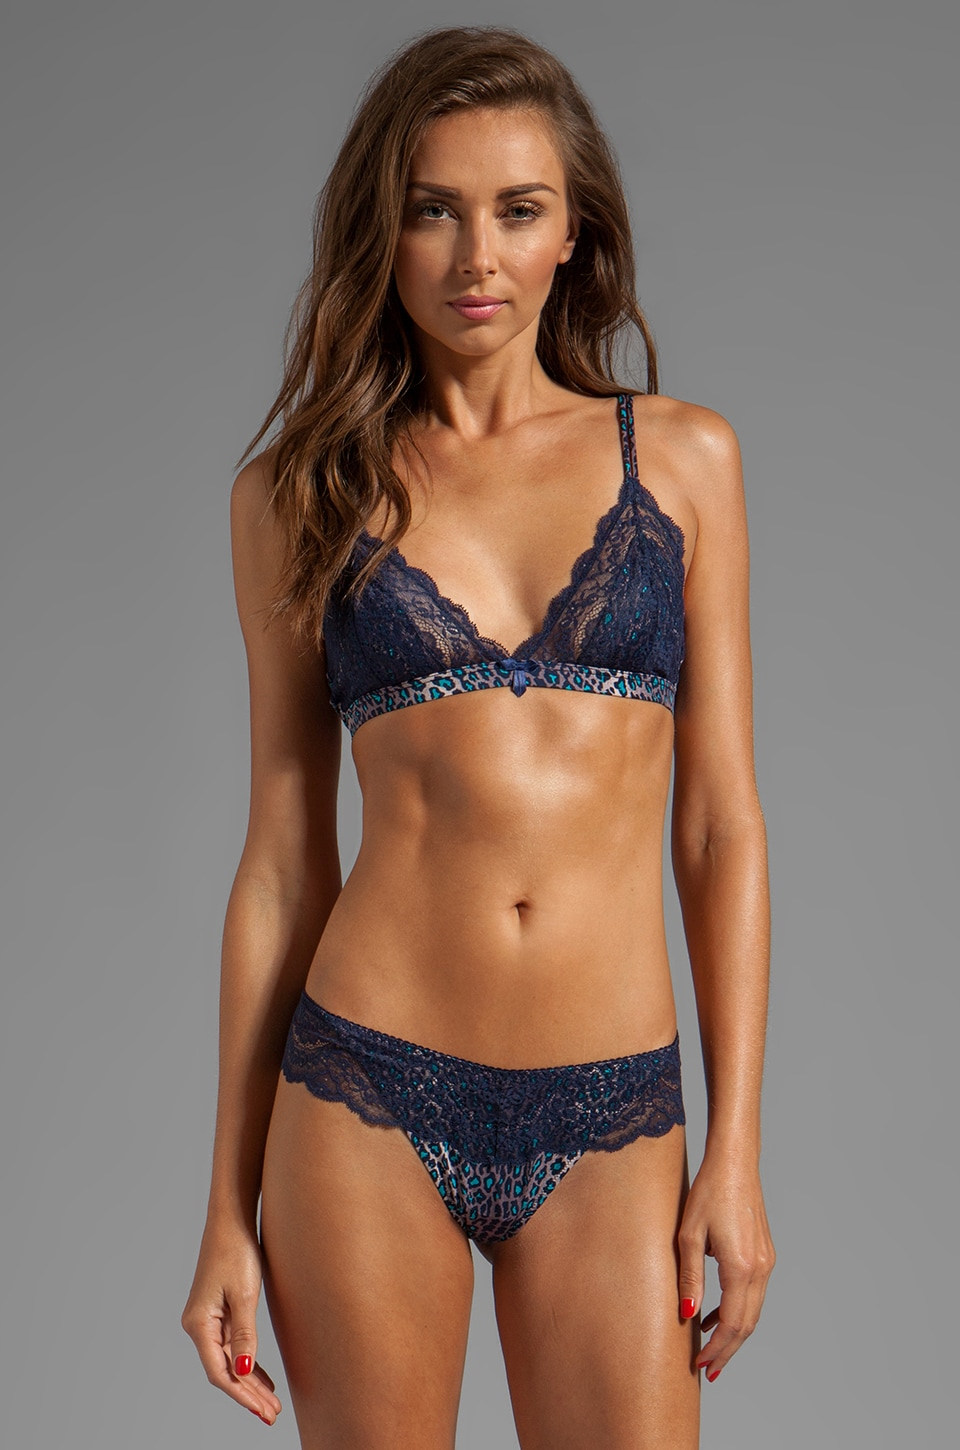 Cosabella Kitty Soft Triangle Bra in Navy/Blue Rock